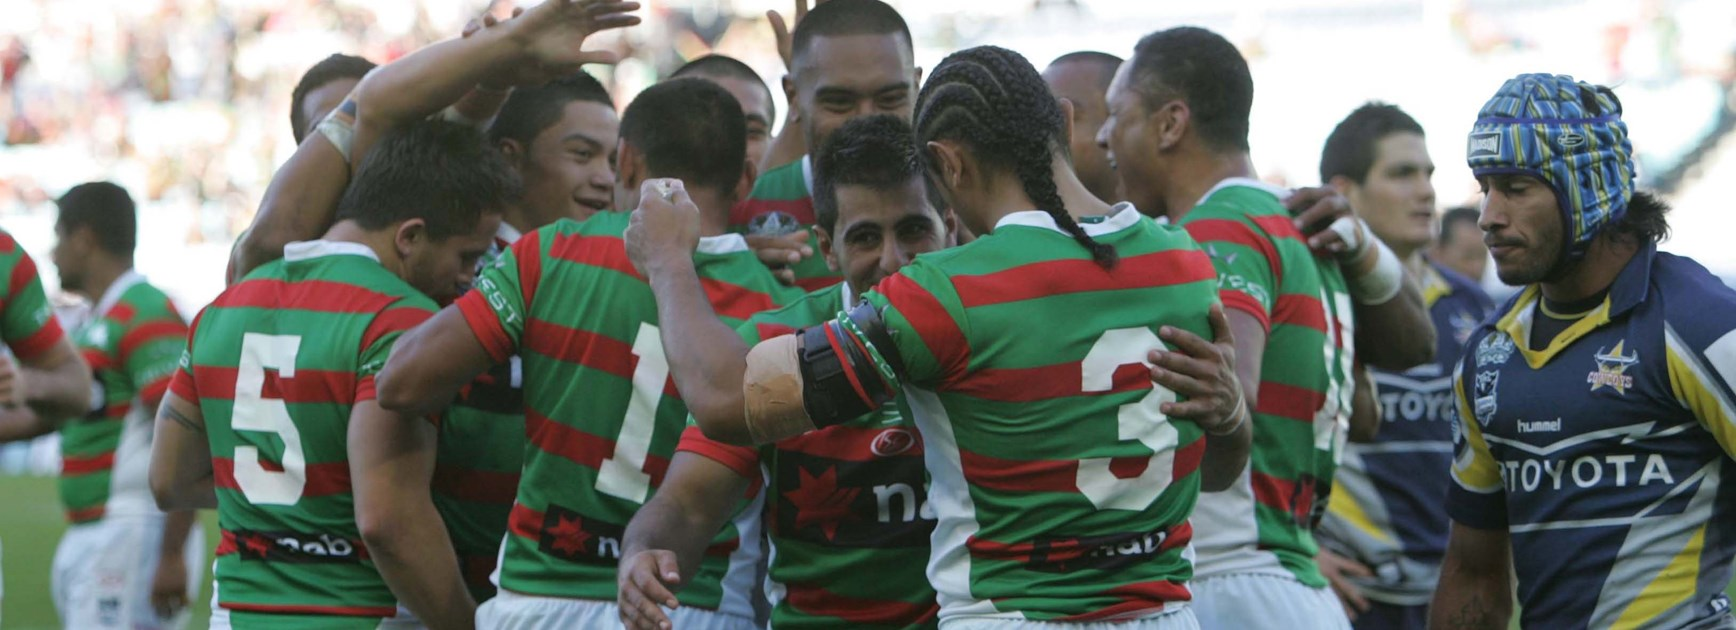 June 28: Rabbitohs' greatest comeback and a new Tonga star